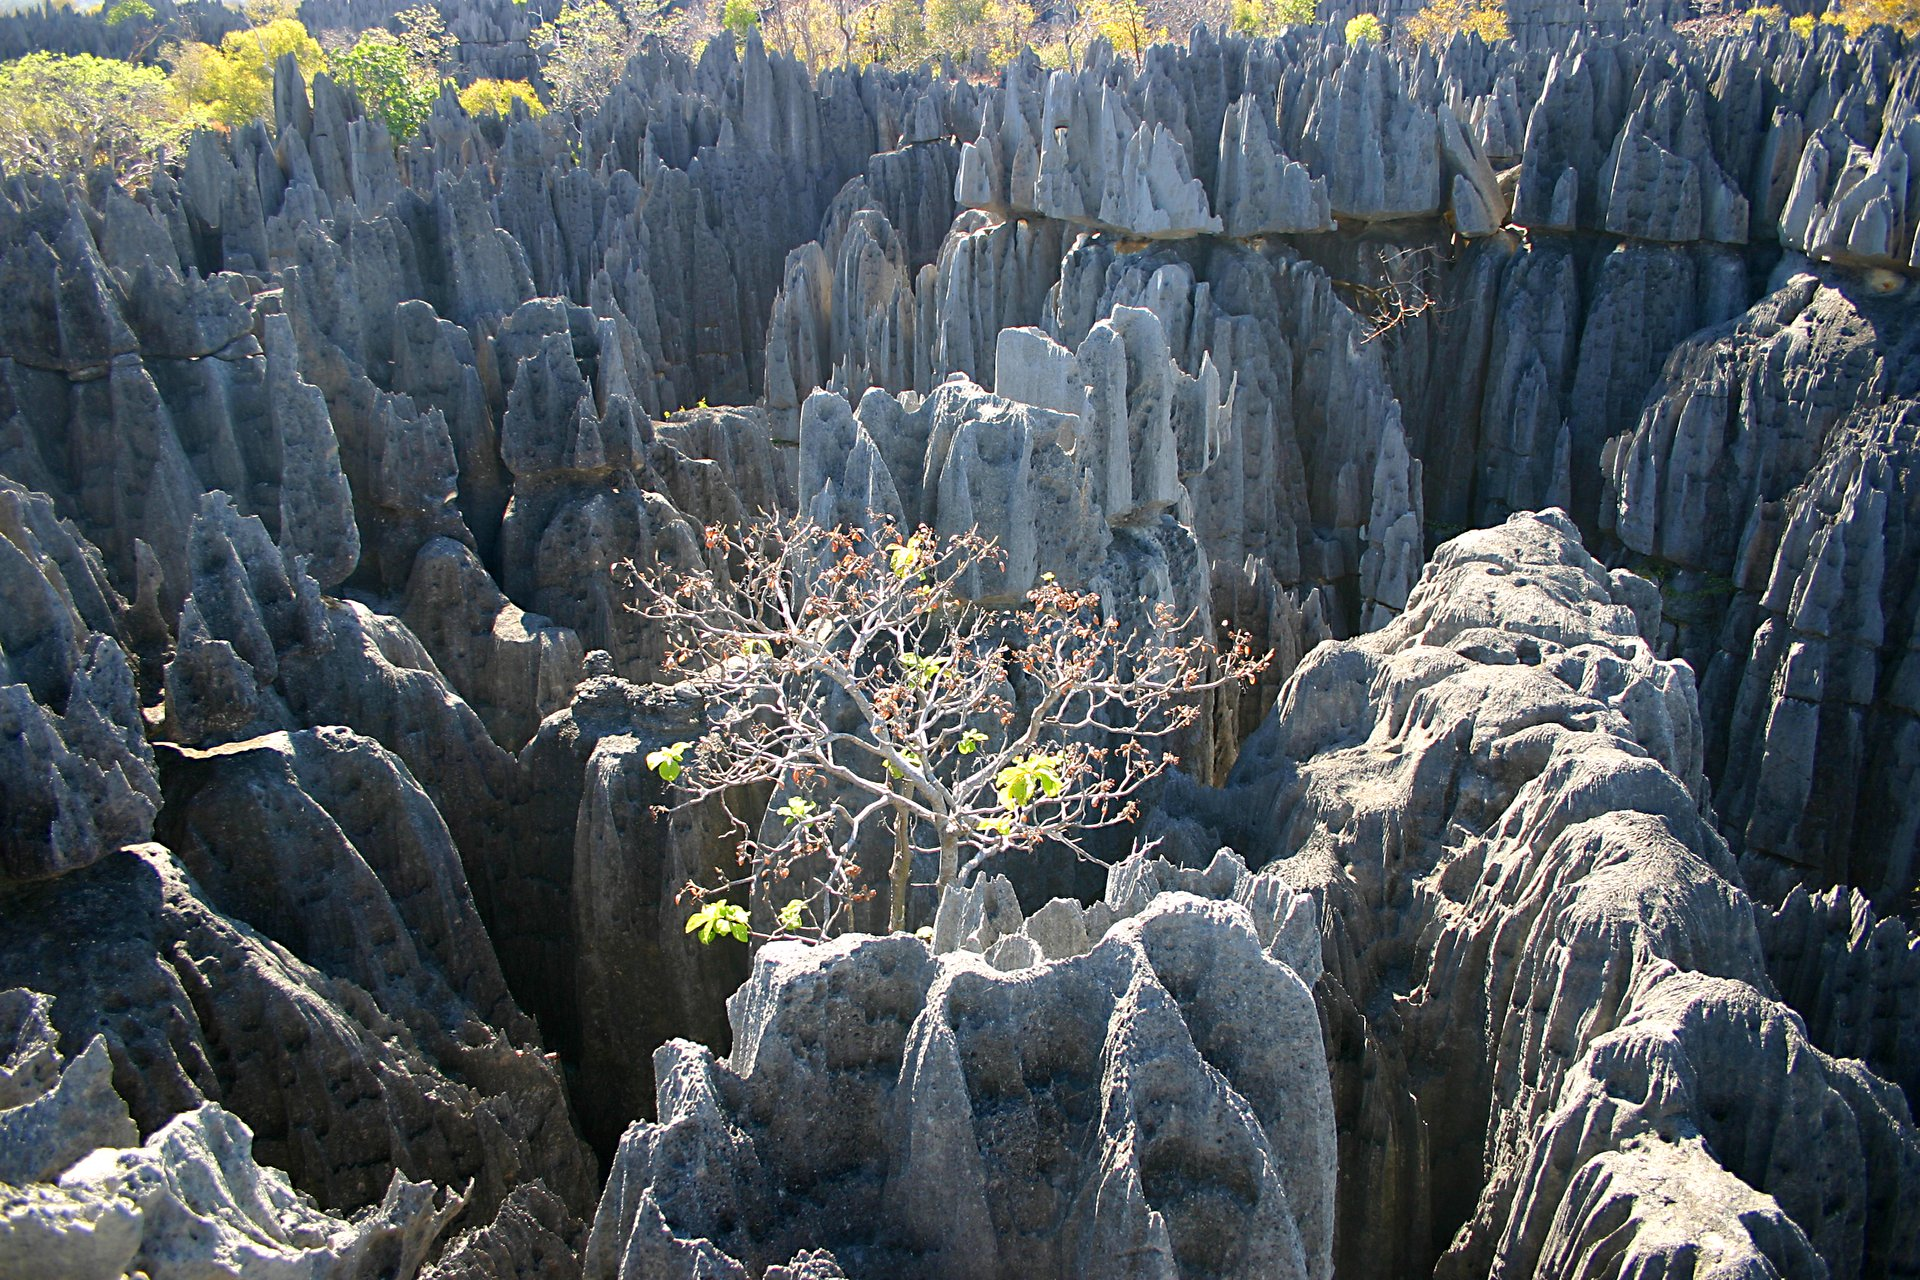 Stone Forest Tsingy de Bemaraha in Madagascar 2020 - Best Time